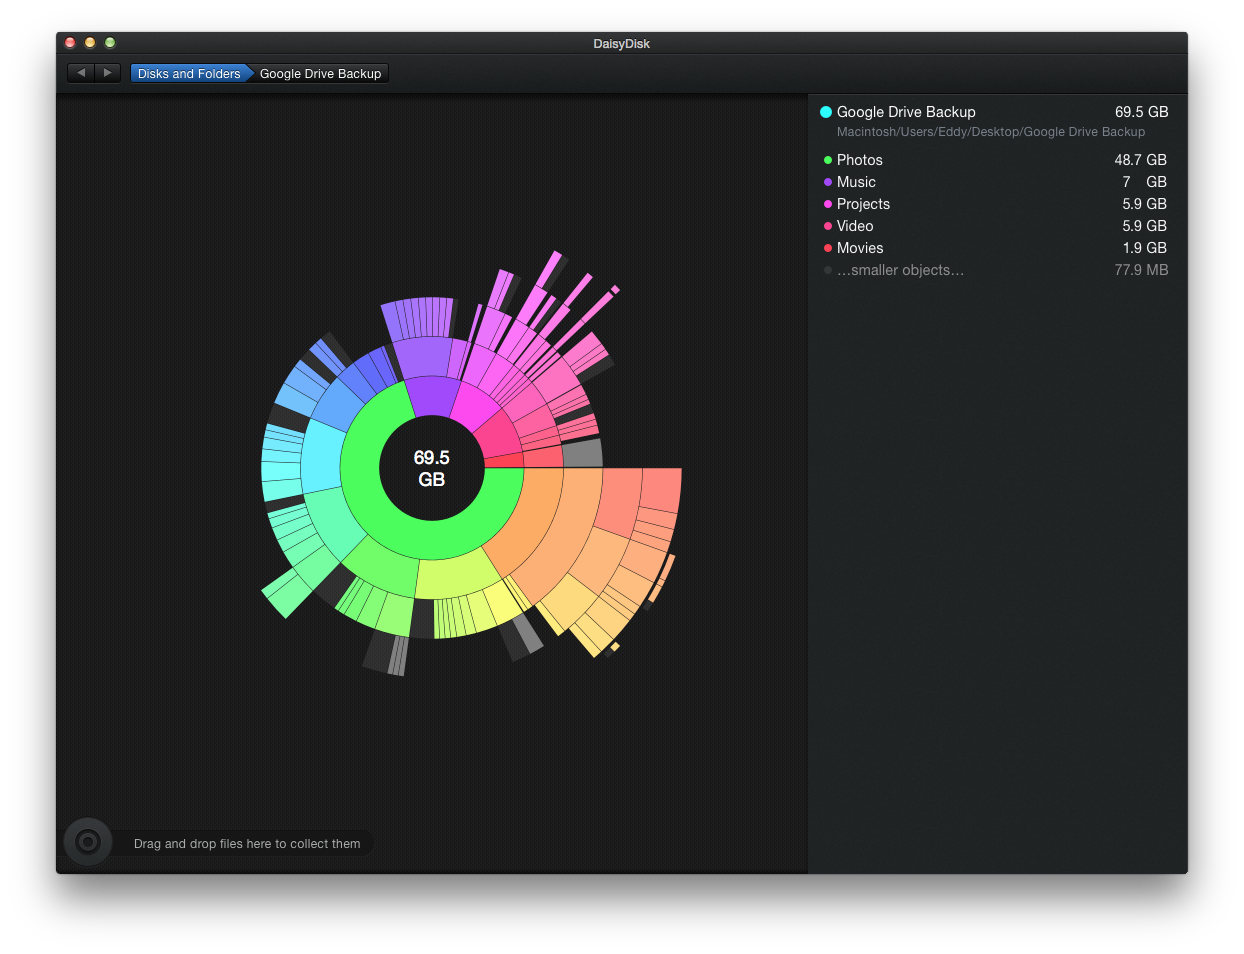 DaisyDisk shows exactly how much and where your files are.